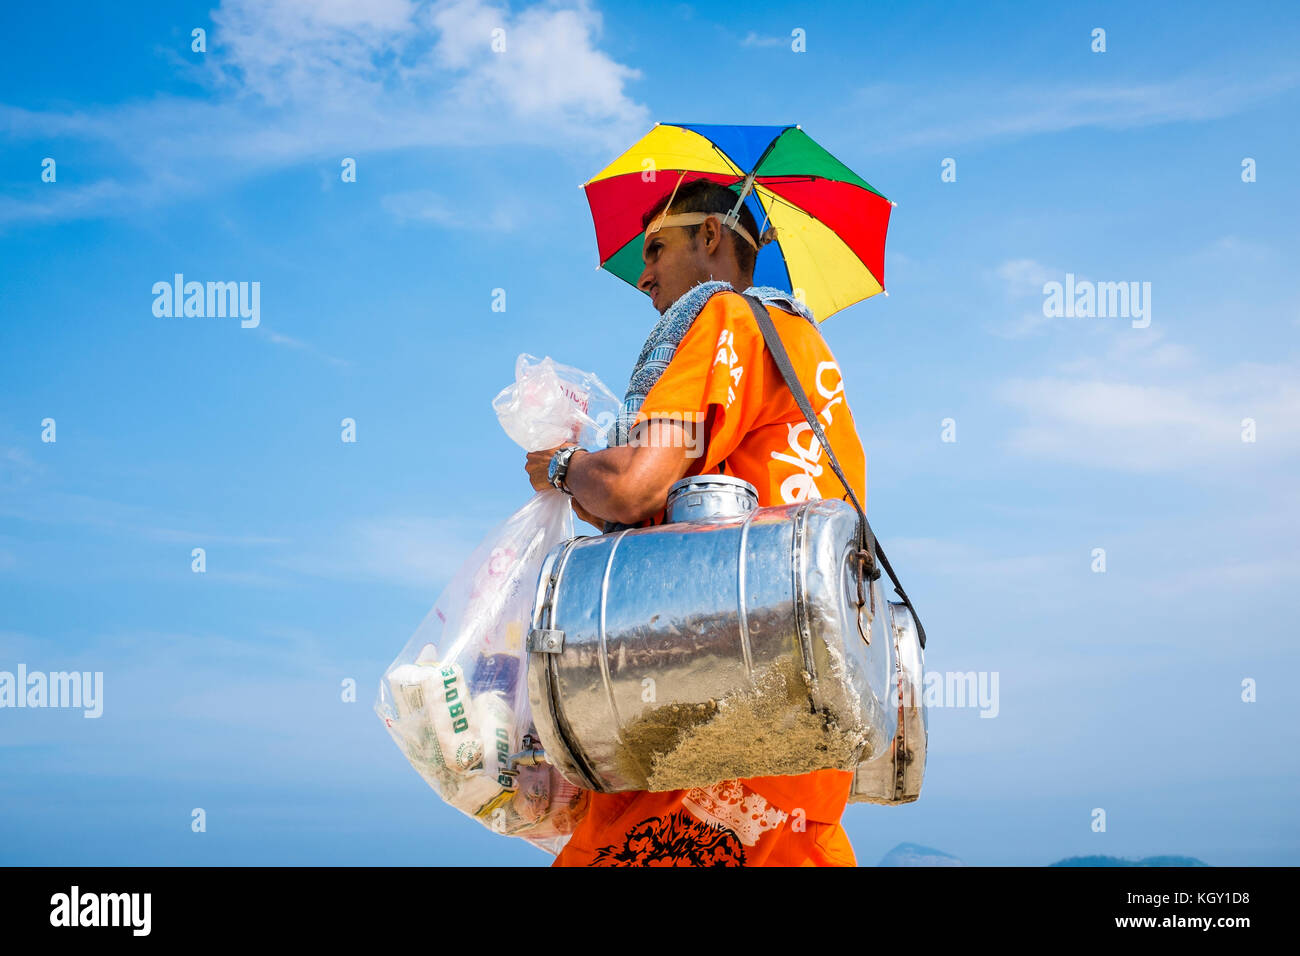 RIO DE JANEIRO - MARCH 30, 2016: Brazilian beach vendor selling South American mate tea walks in uniform along the - Stock Image